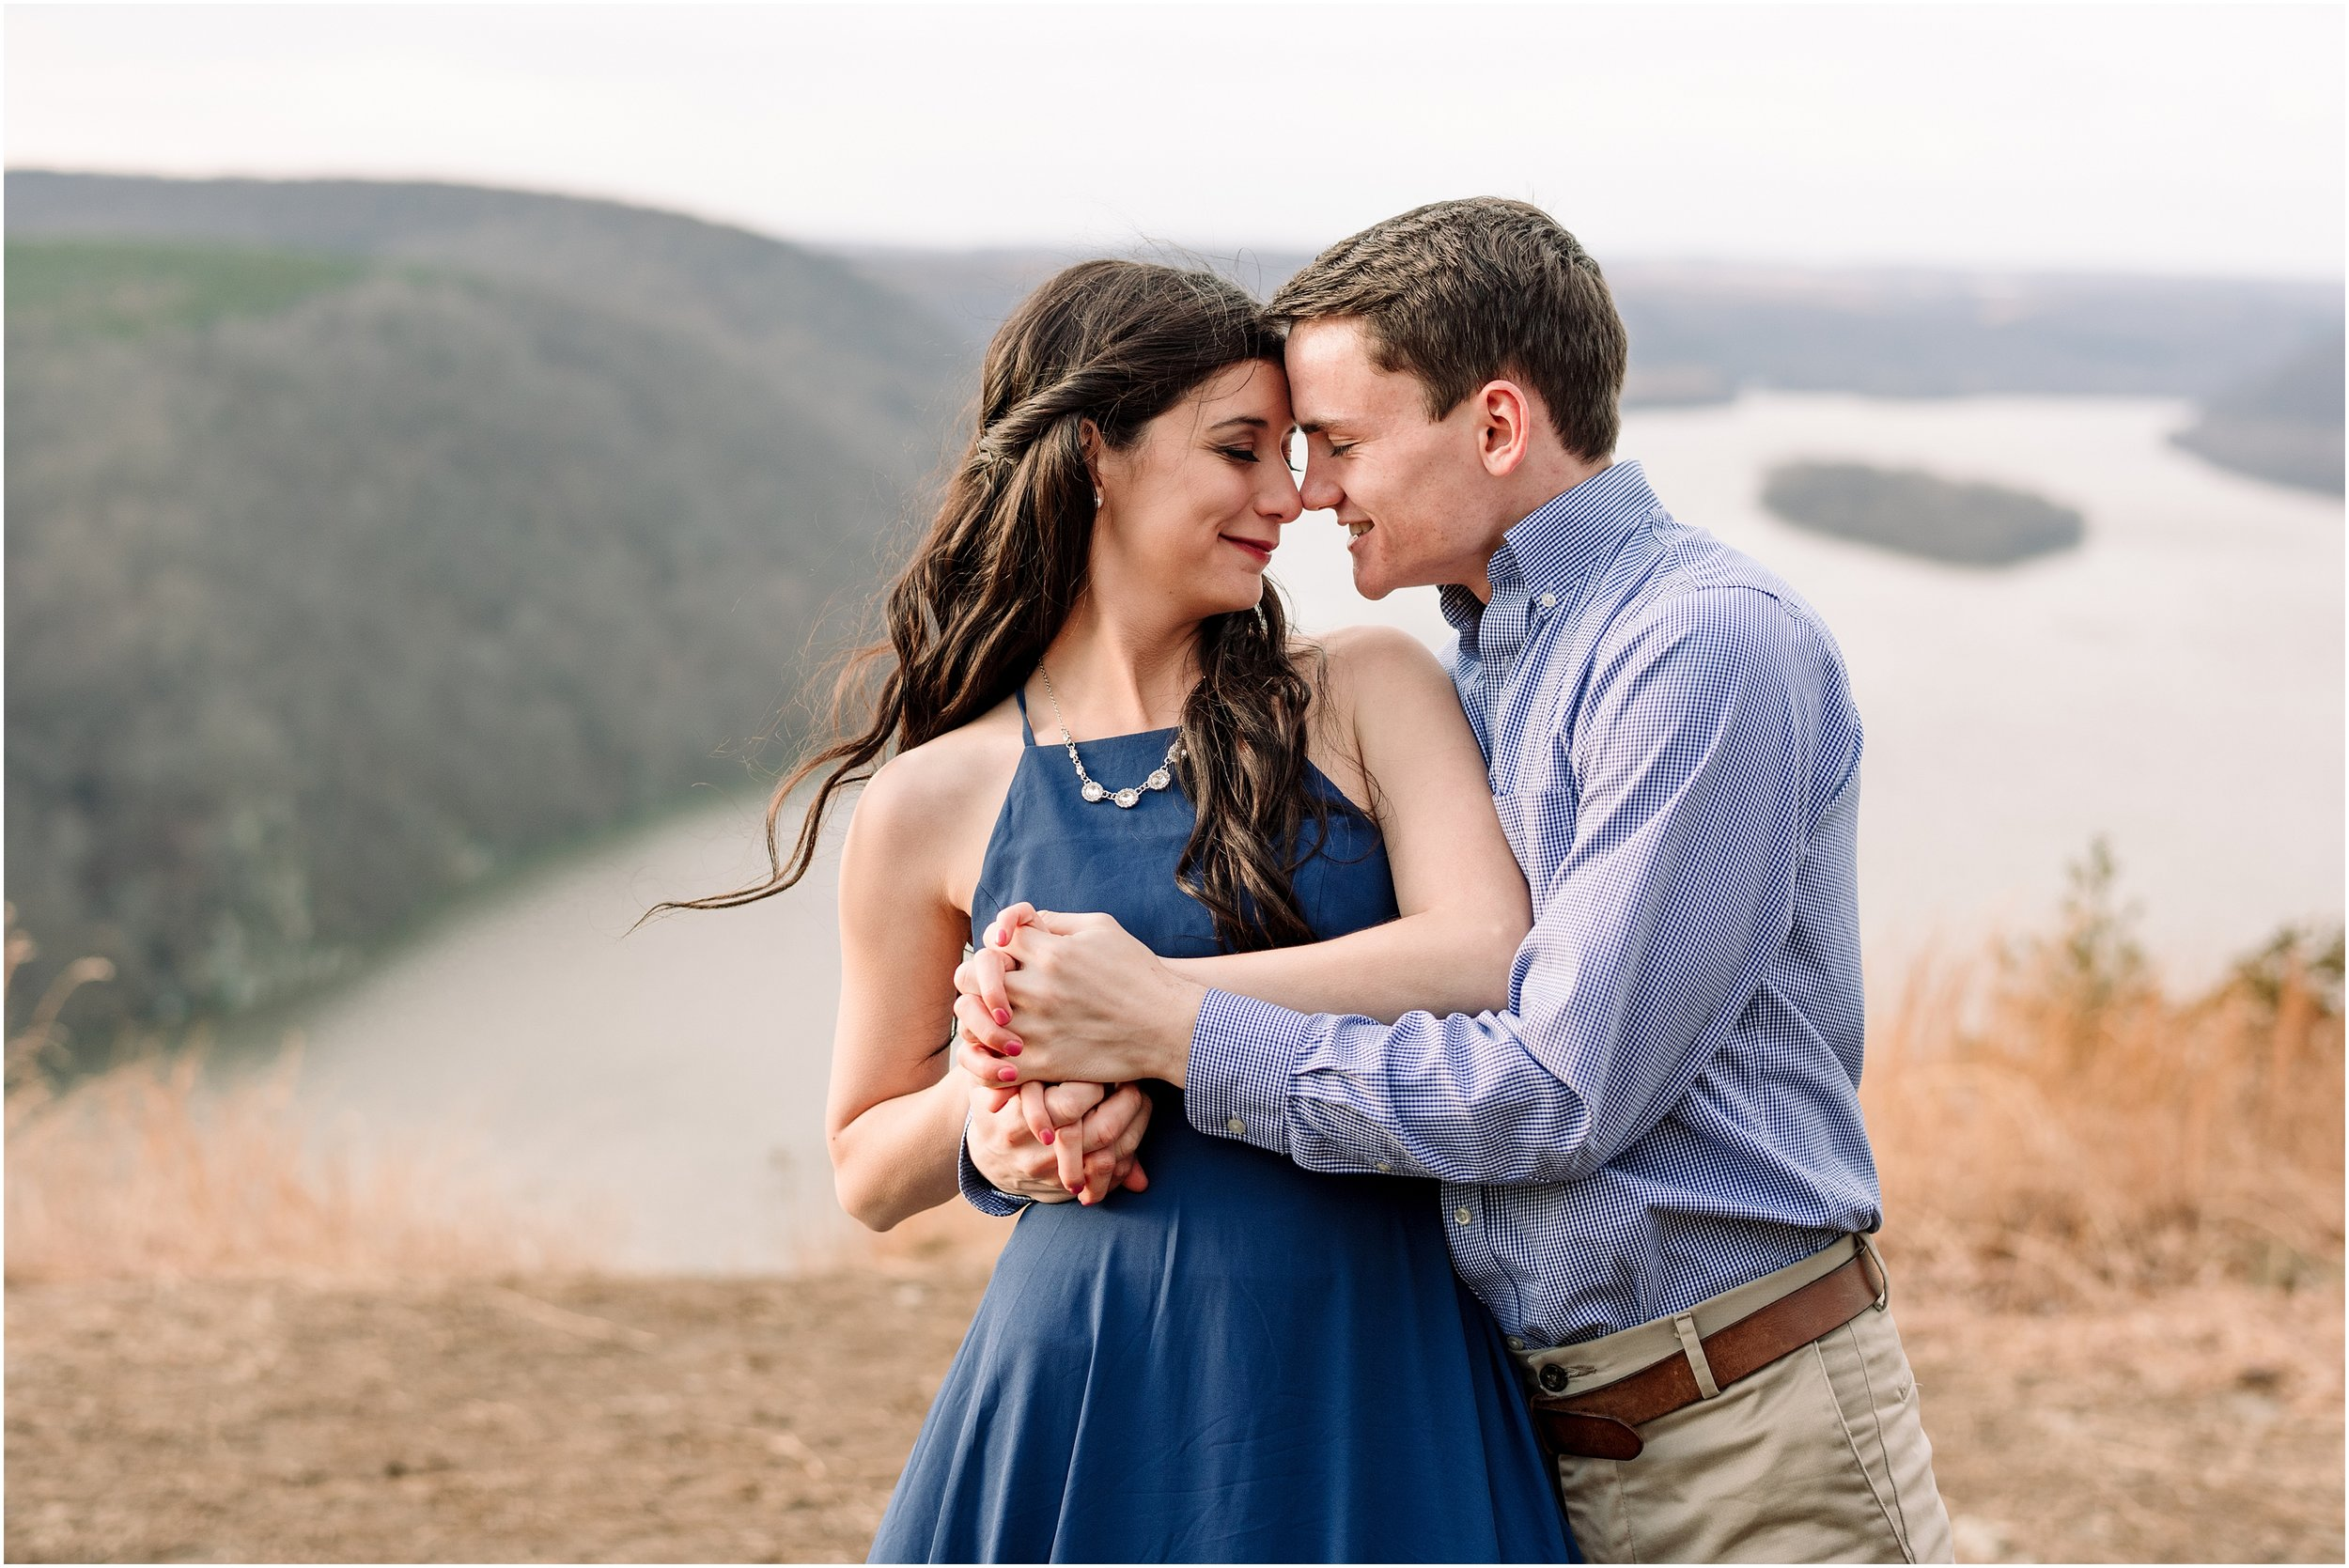 hannah leigh photography winter overlook engagement session lancaster PA_2640.jpg